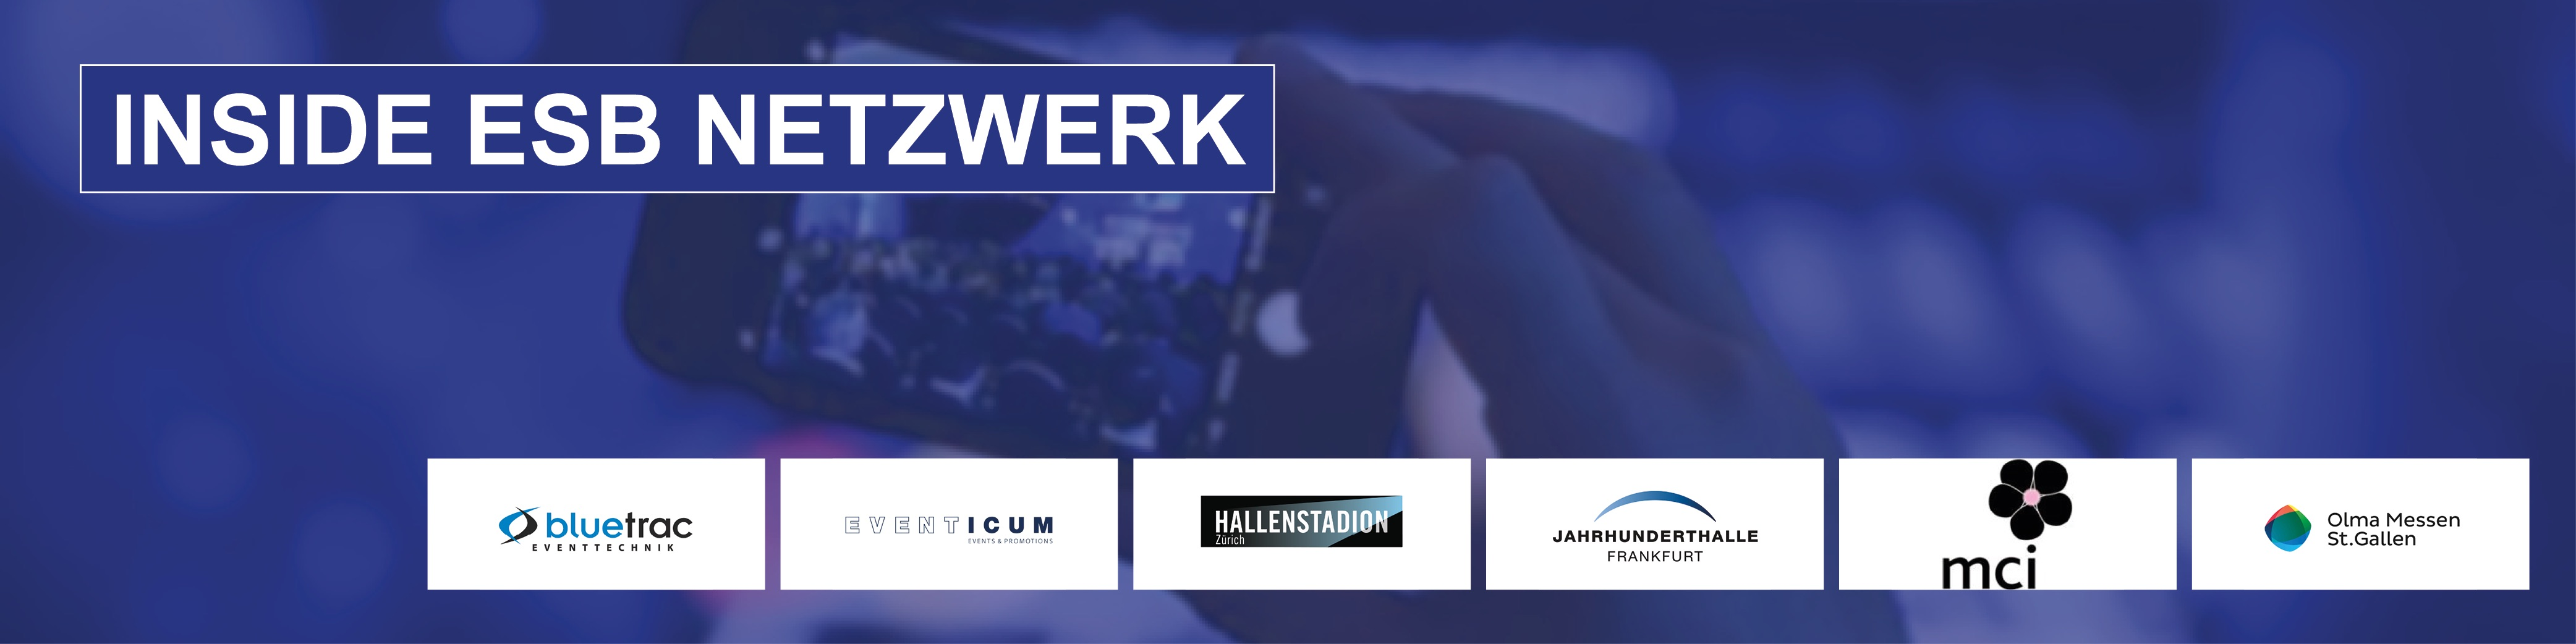 banner_corporate